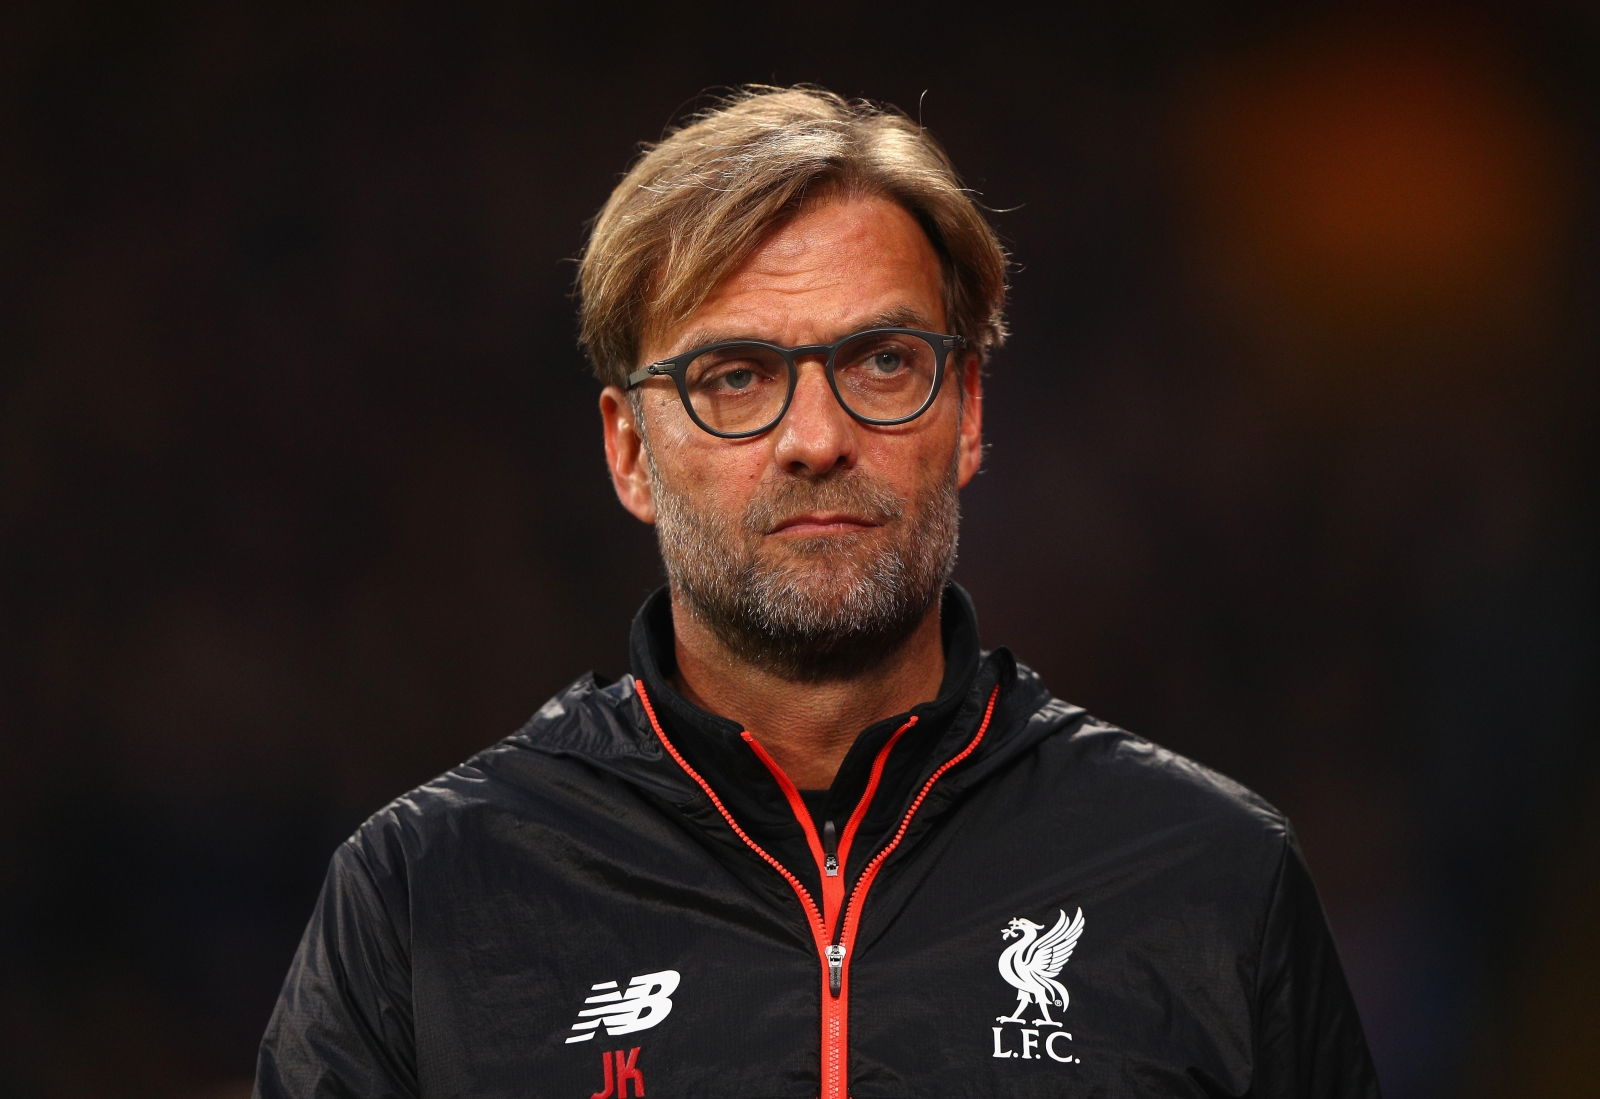 Europa League Exit Will Help Man Utd - Klopp